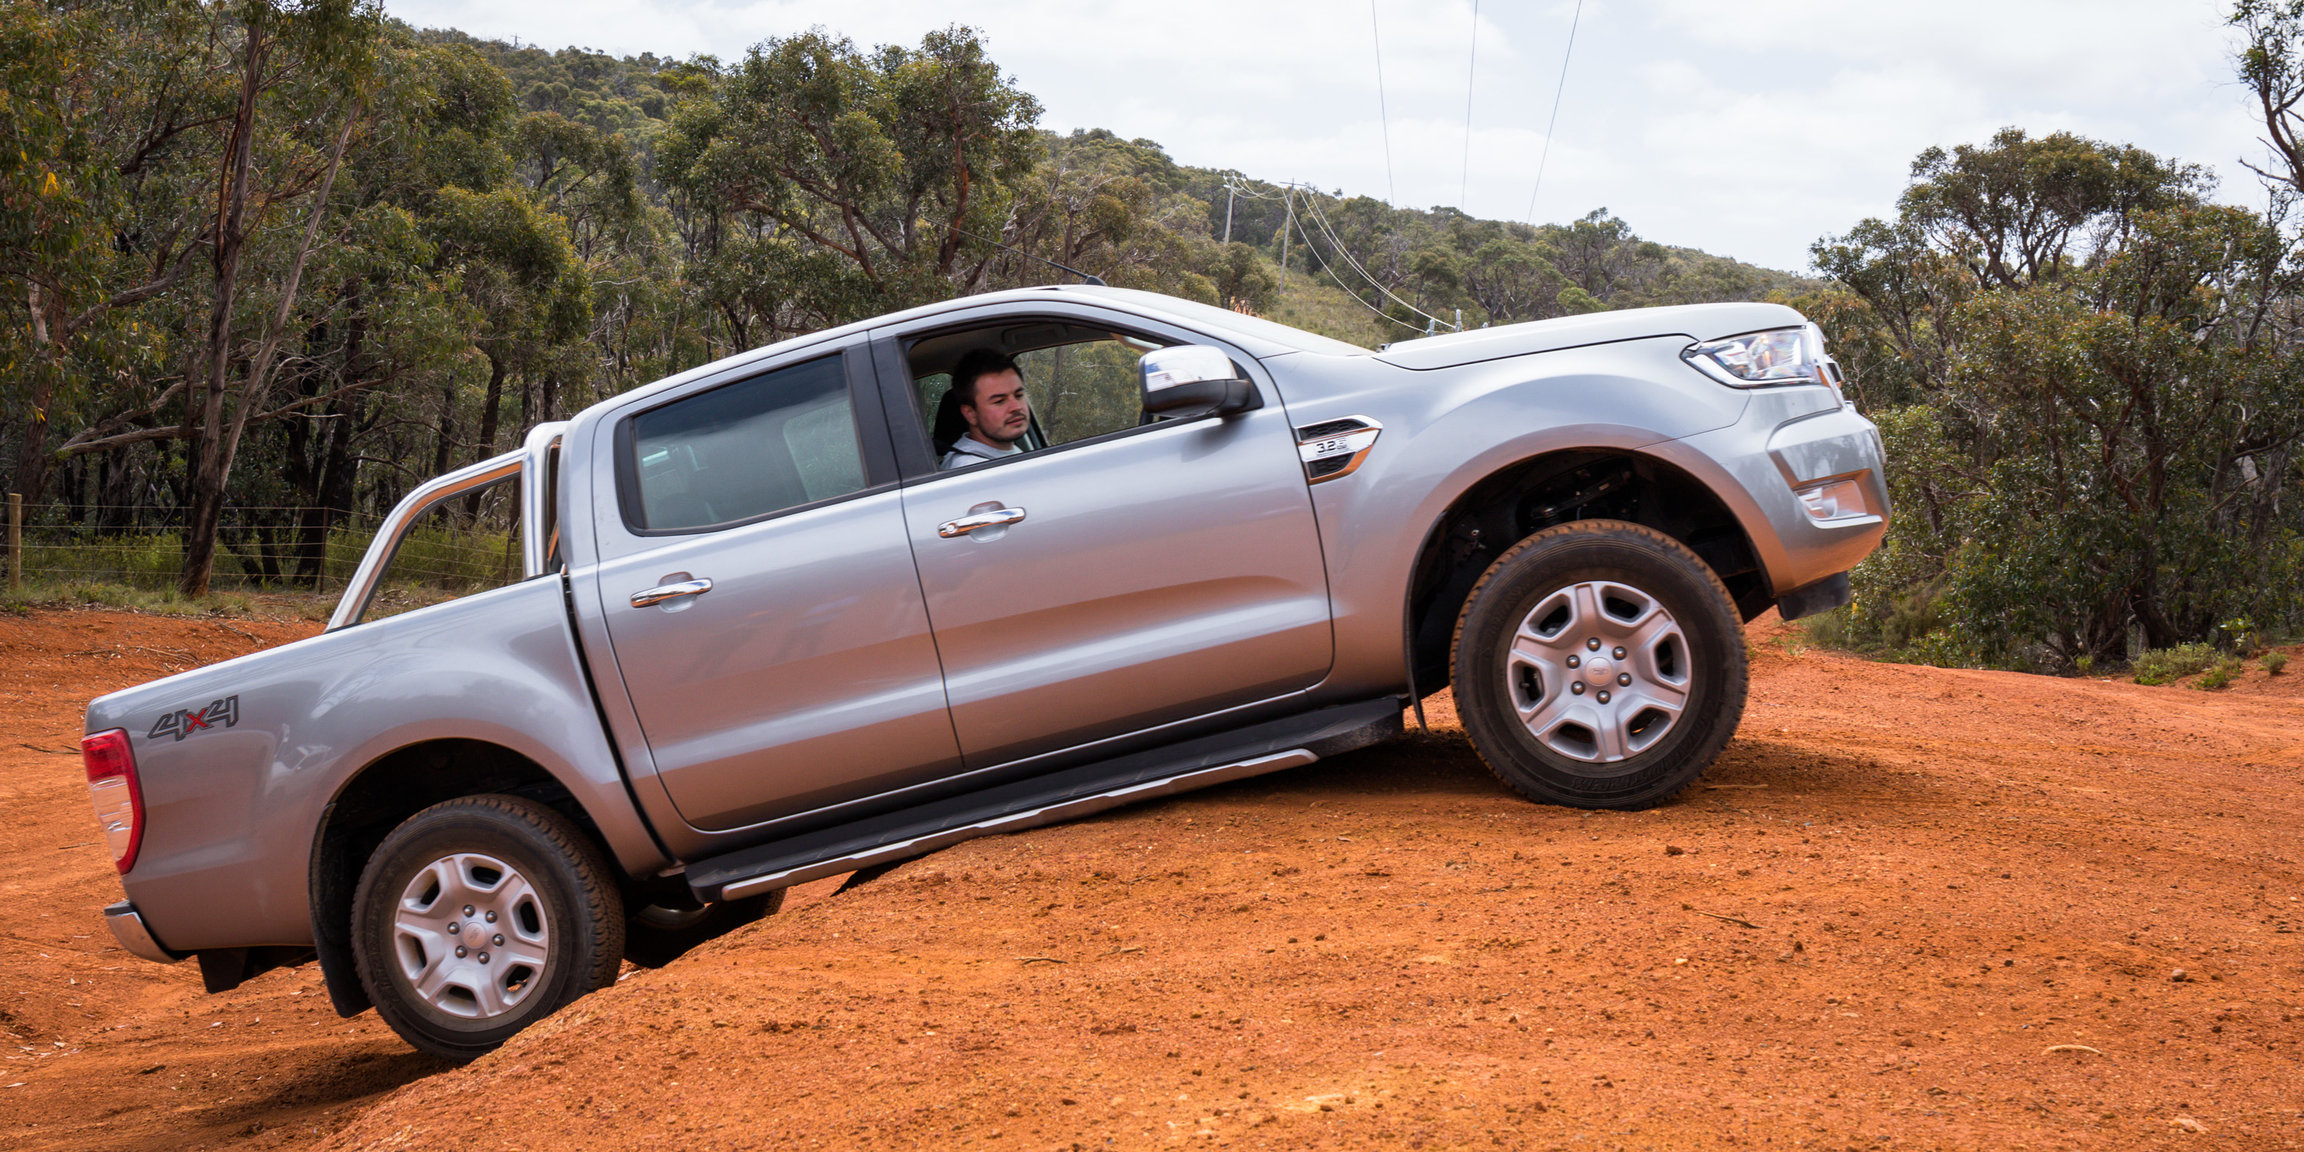 Ford Ranger photo 173020